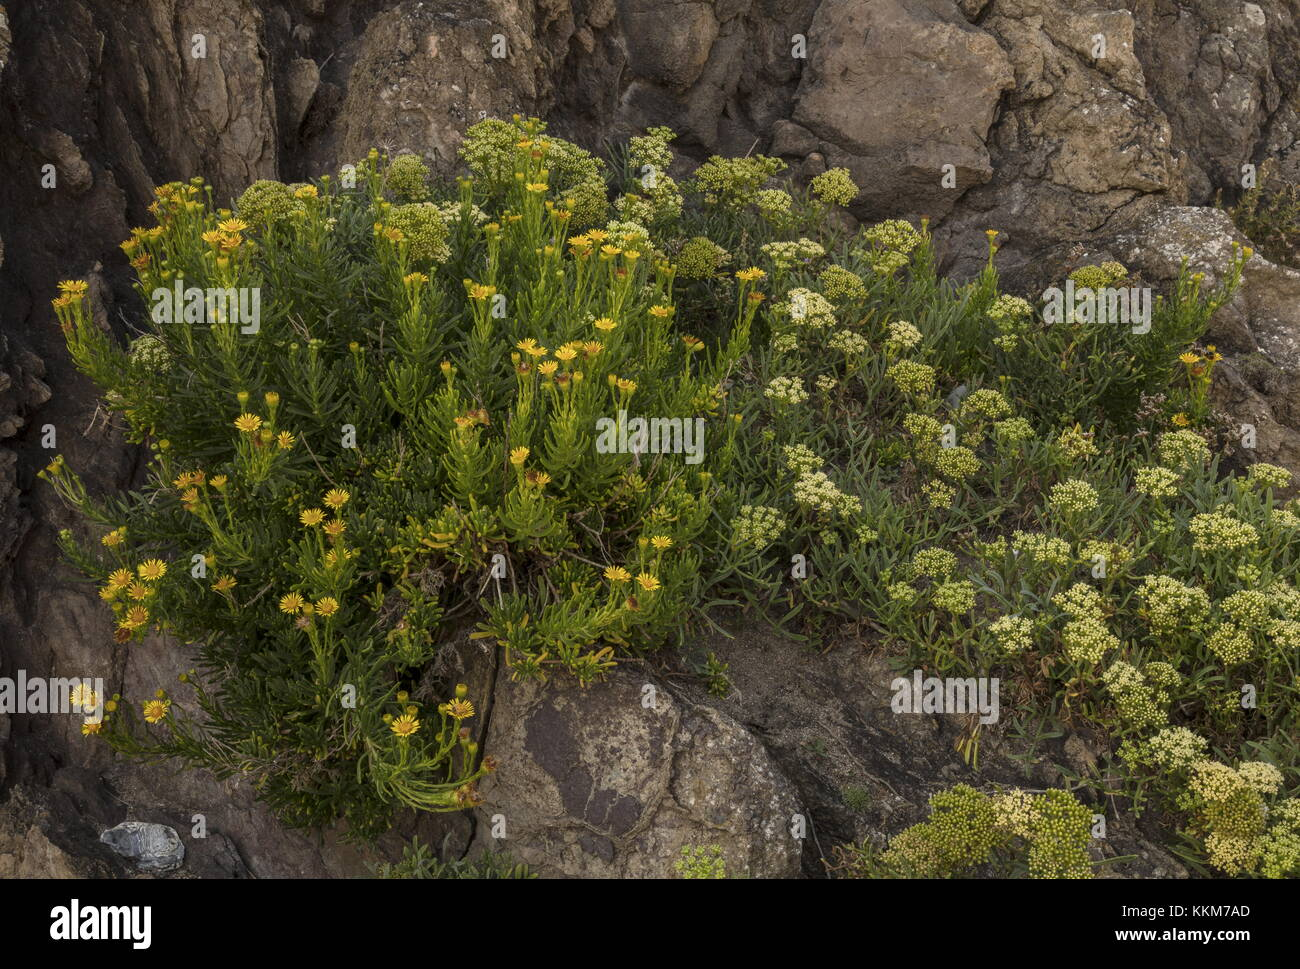 Golden Samphire, Inula crithmoides, with Rock Samphire, in flower on rocky coast, Anglesey. Stock Photo